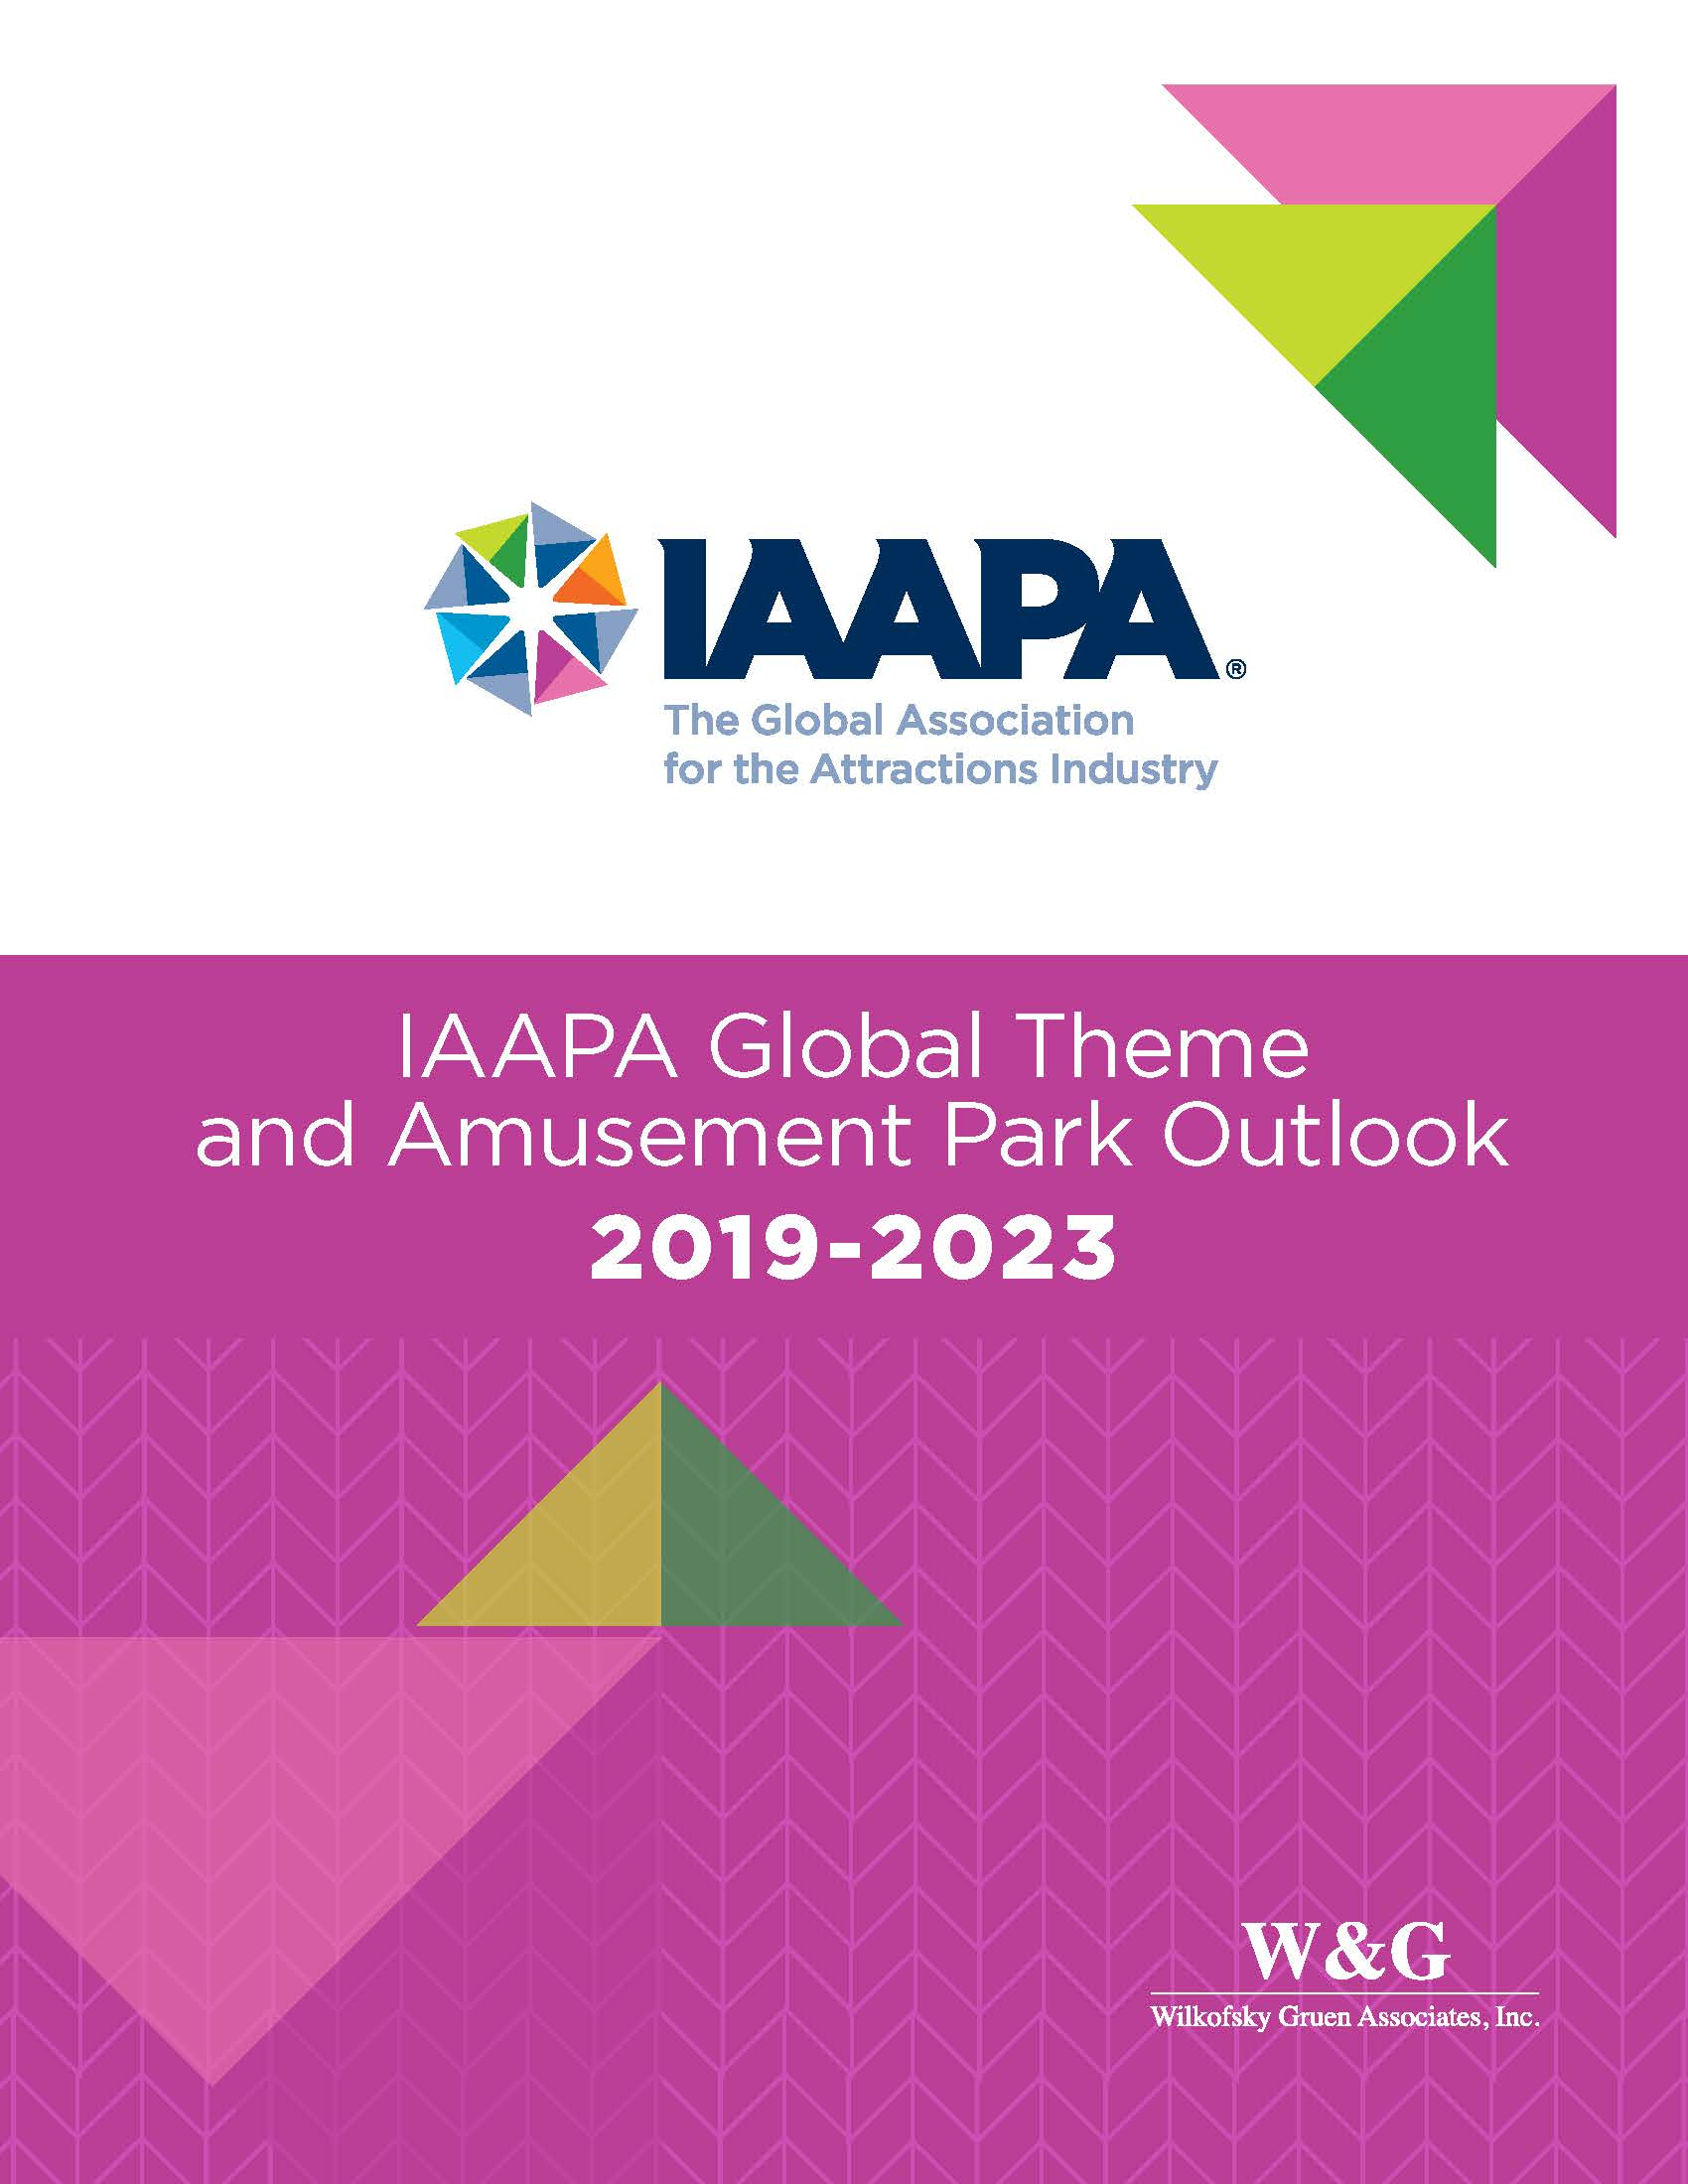 IAAPA Global Theme and Amusement Park Outlook 2019 - 2023